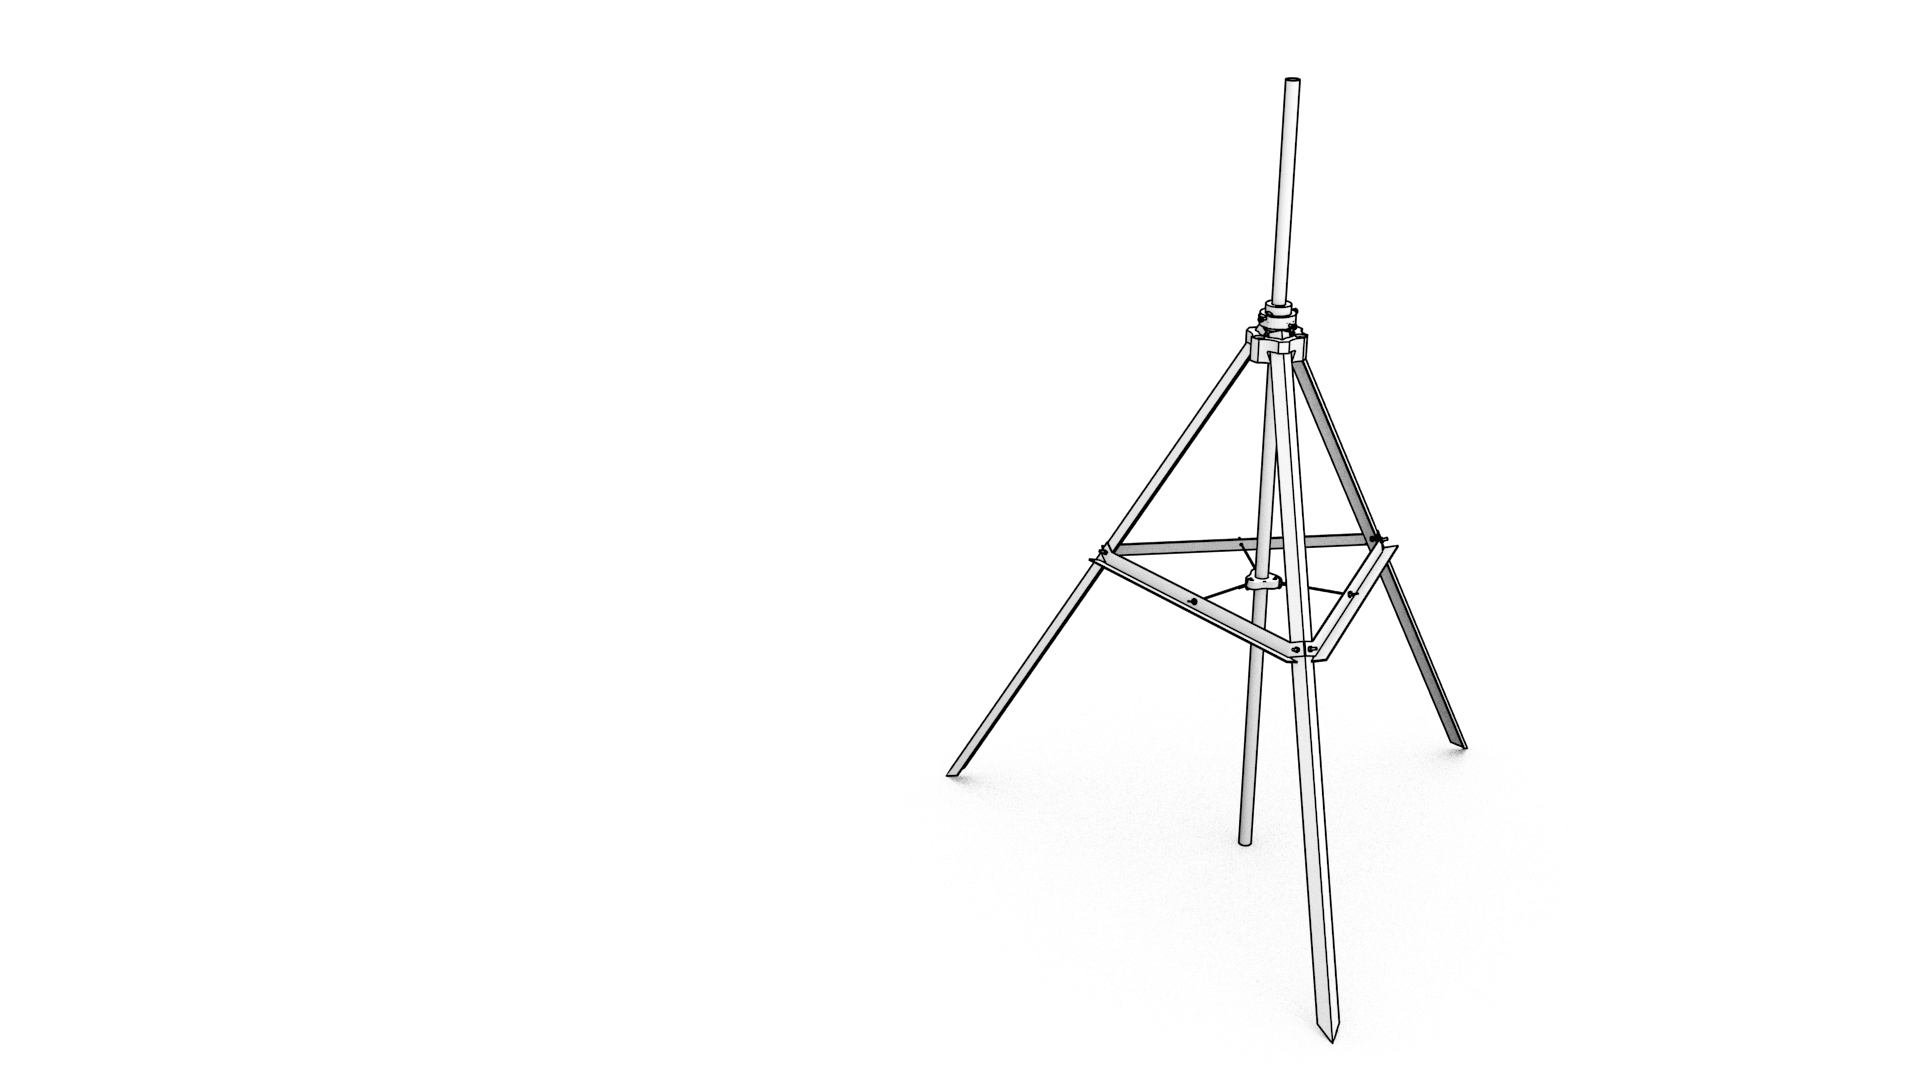 Assembly/renders/tripod.png